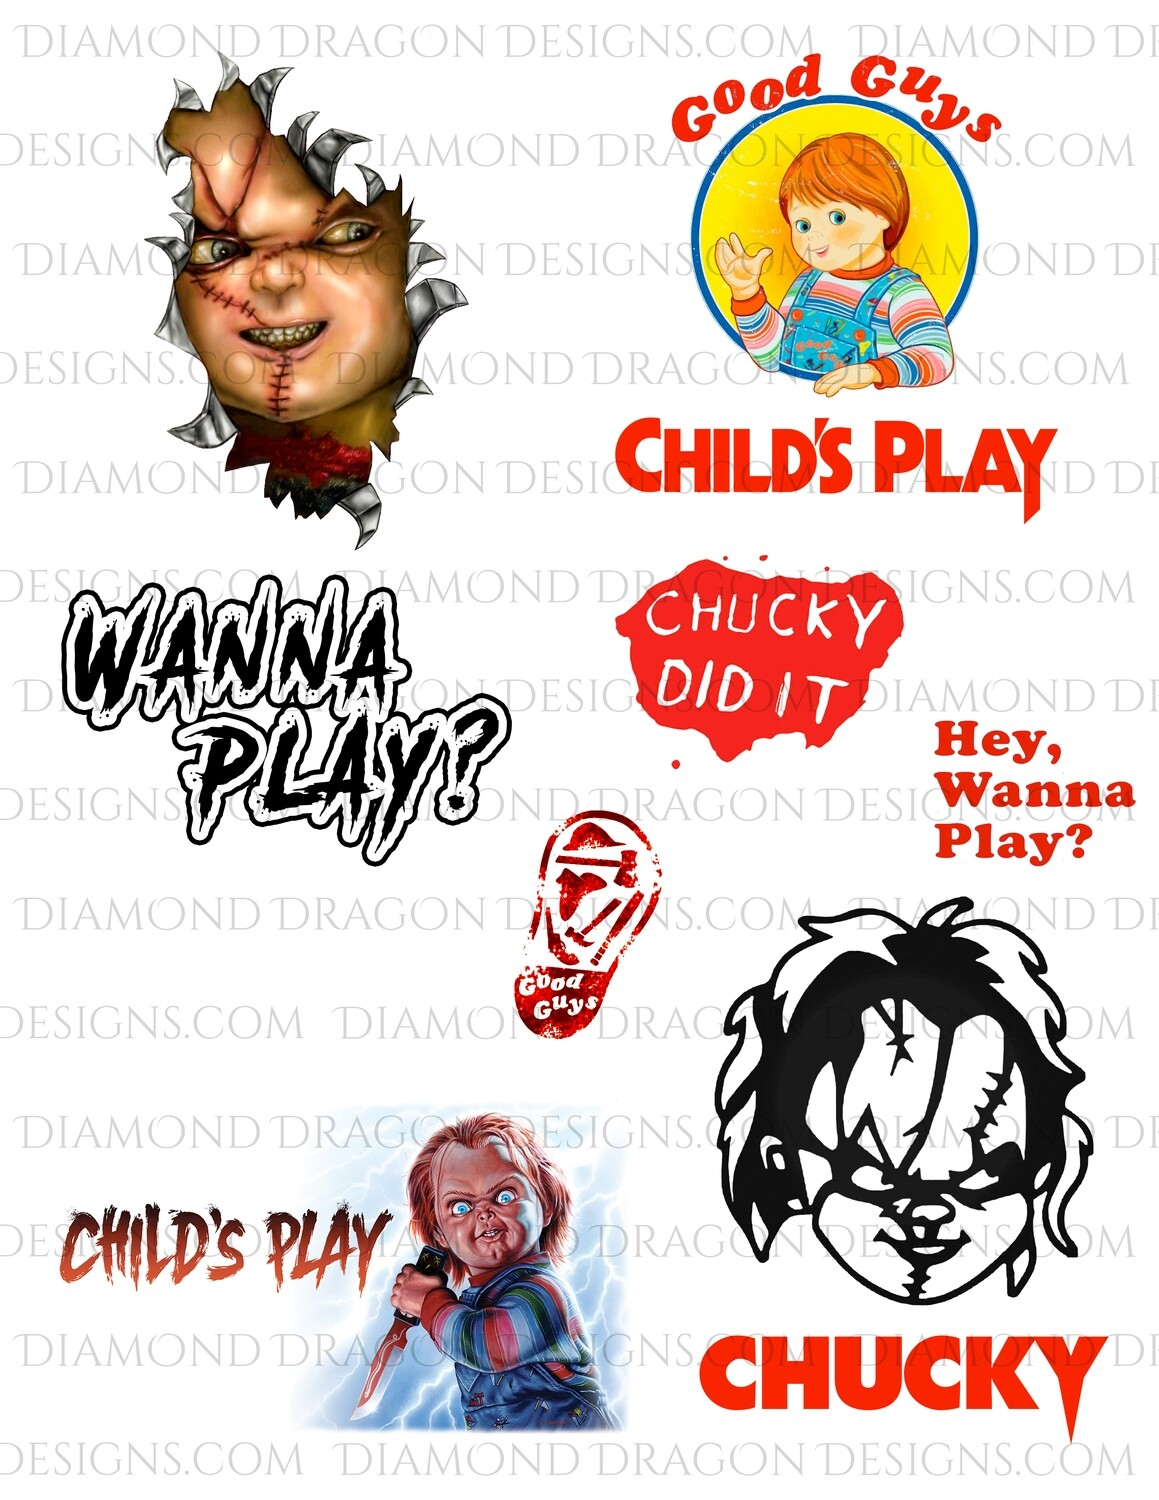 Halloween - Child's Play Movie, Chucky, Full Page, Digital Image